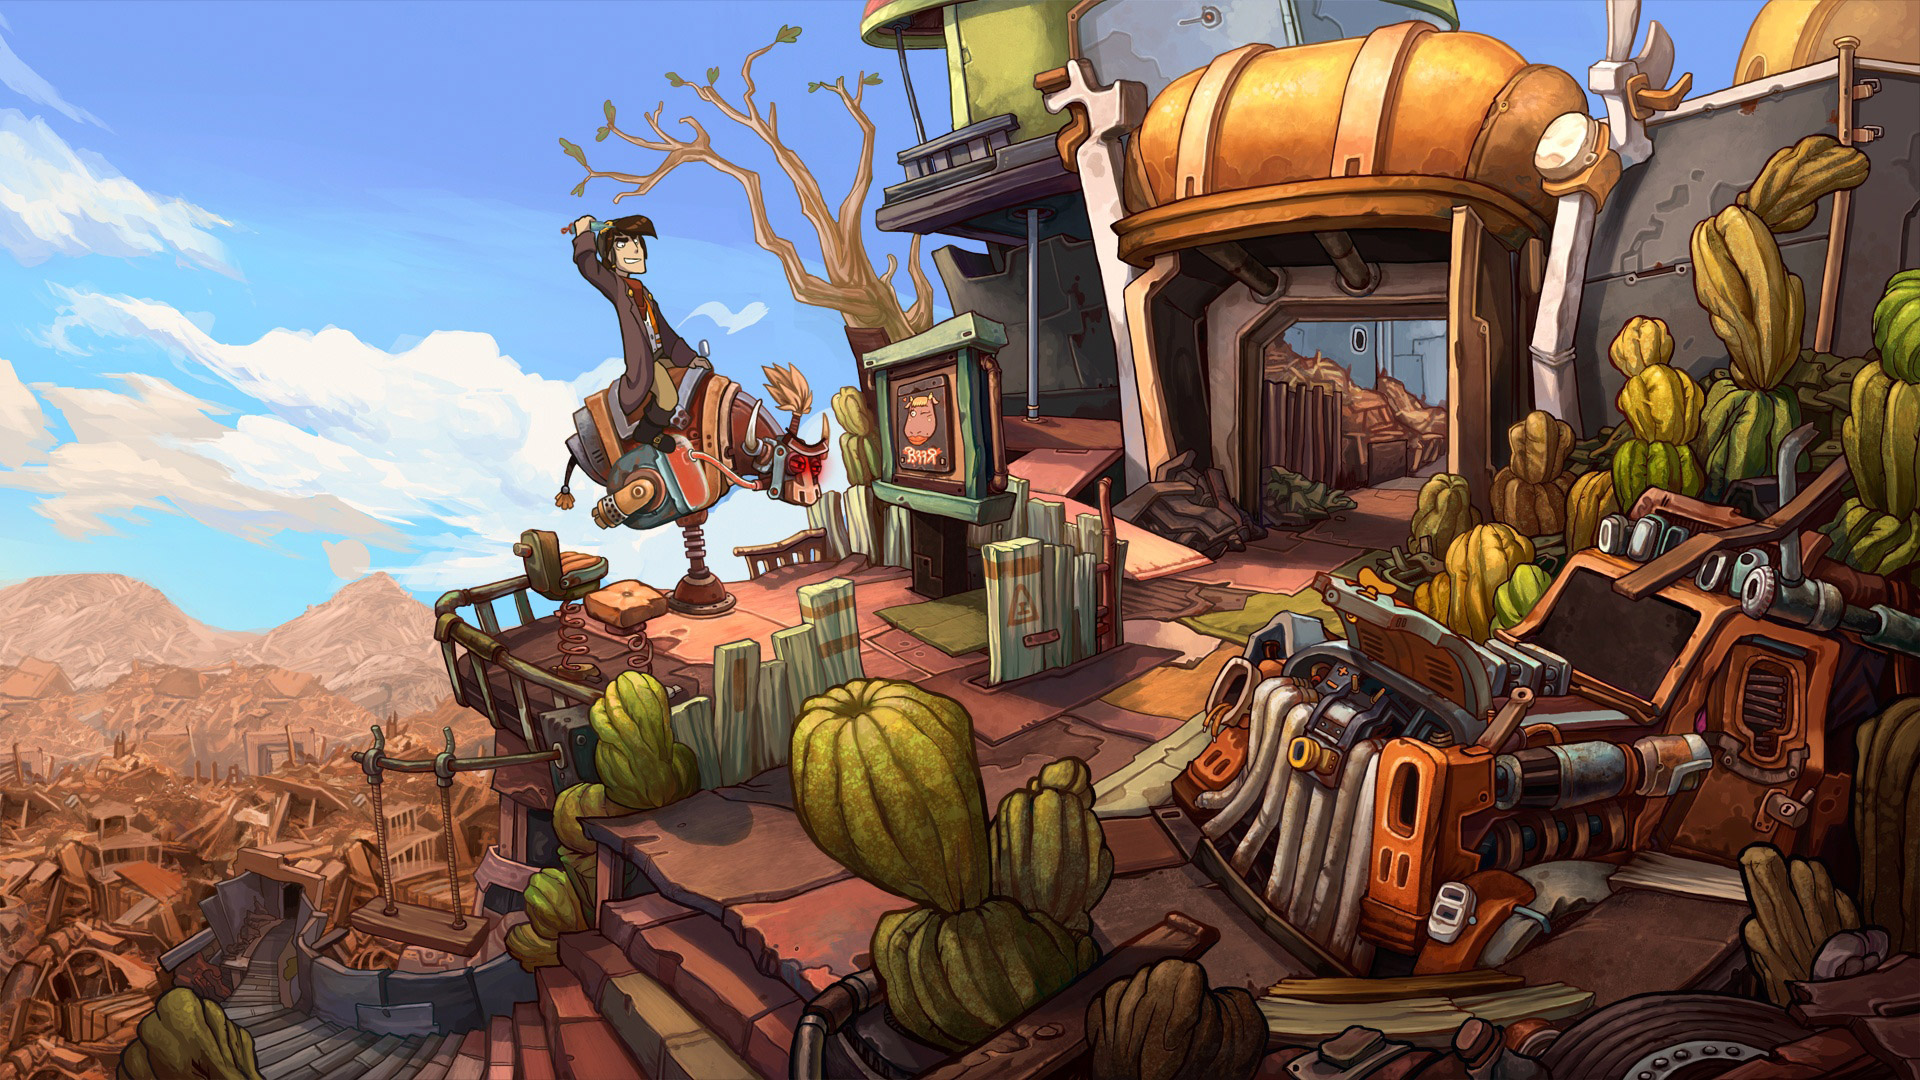 Free Deponia Wallpaper in 1920x1080